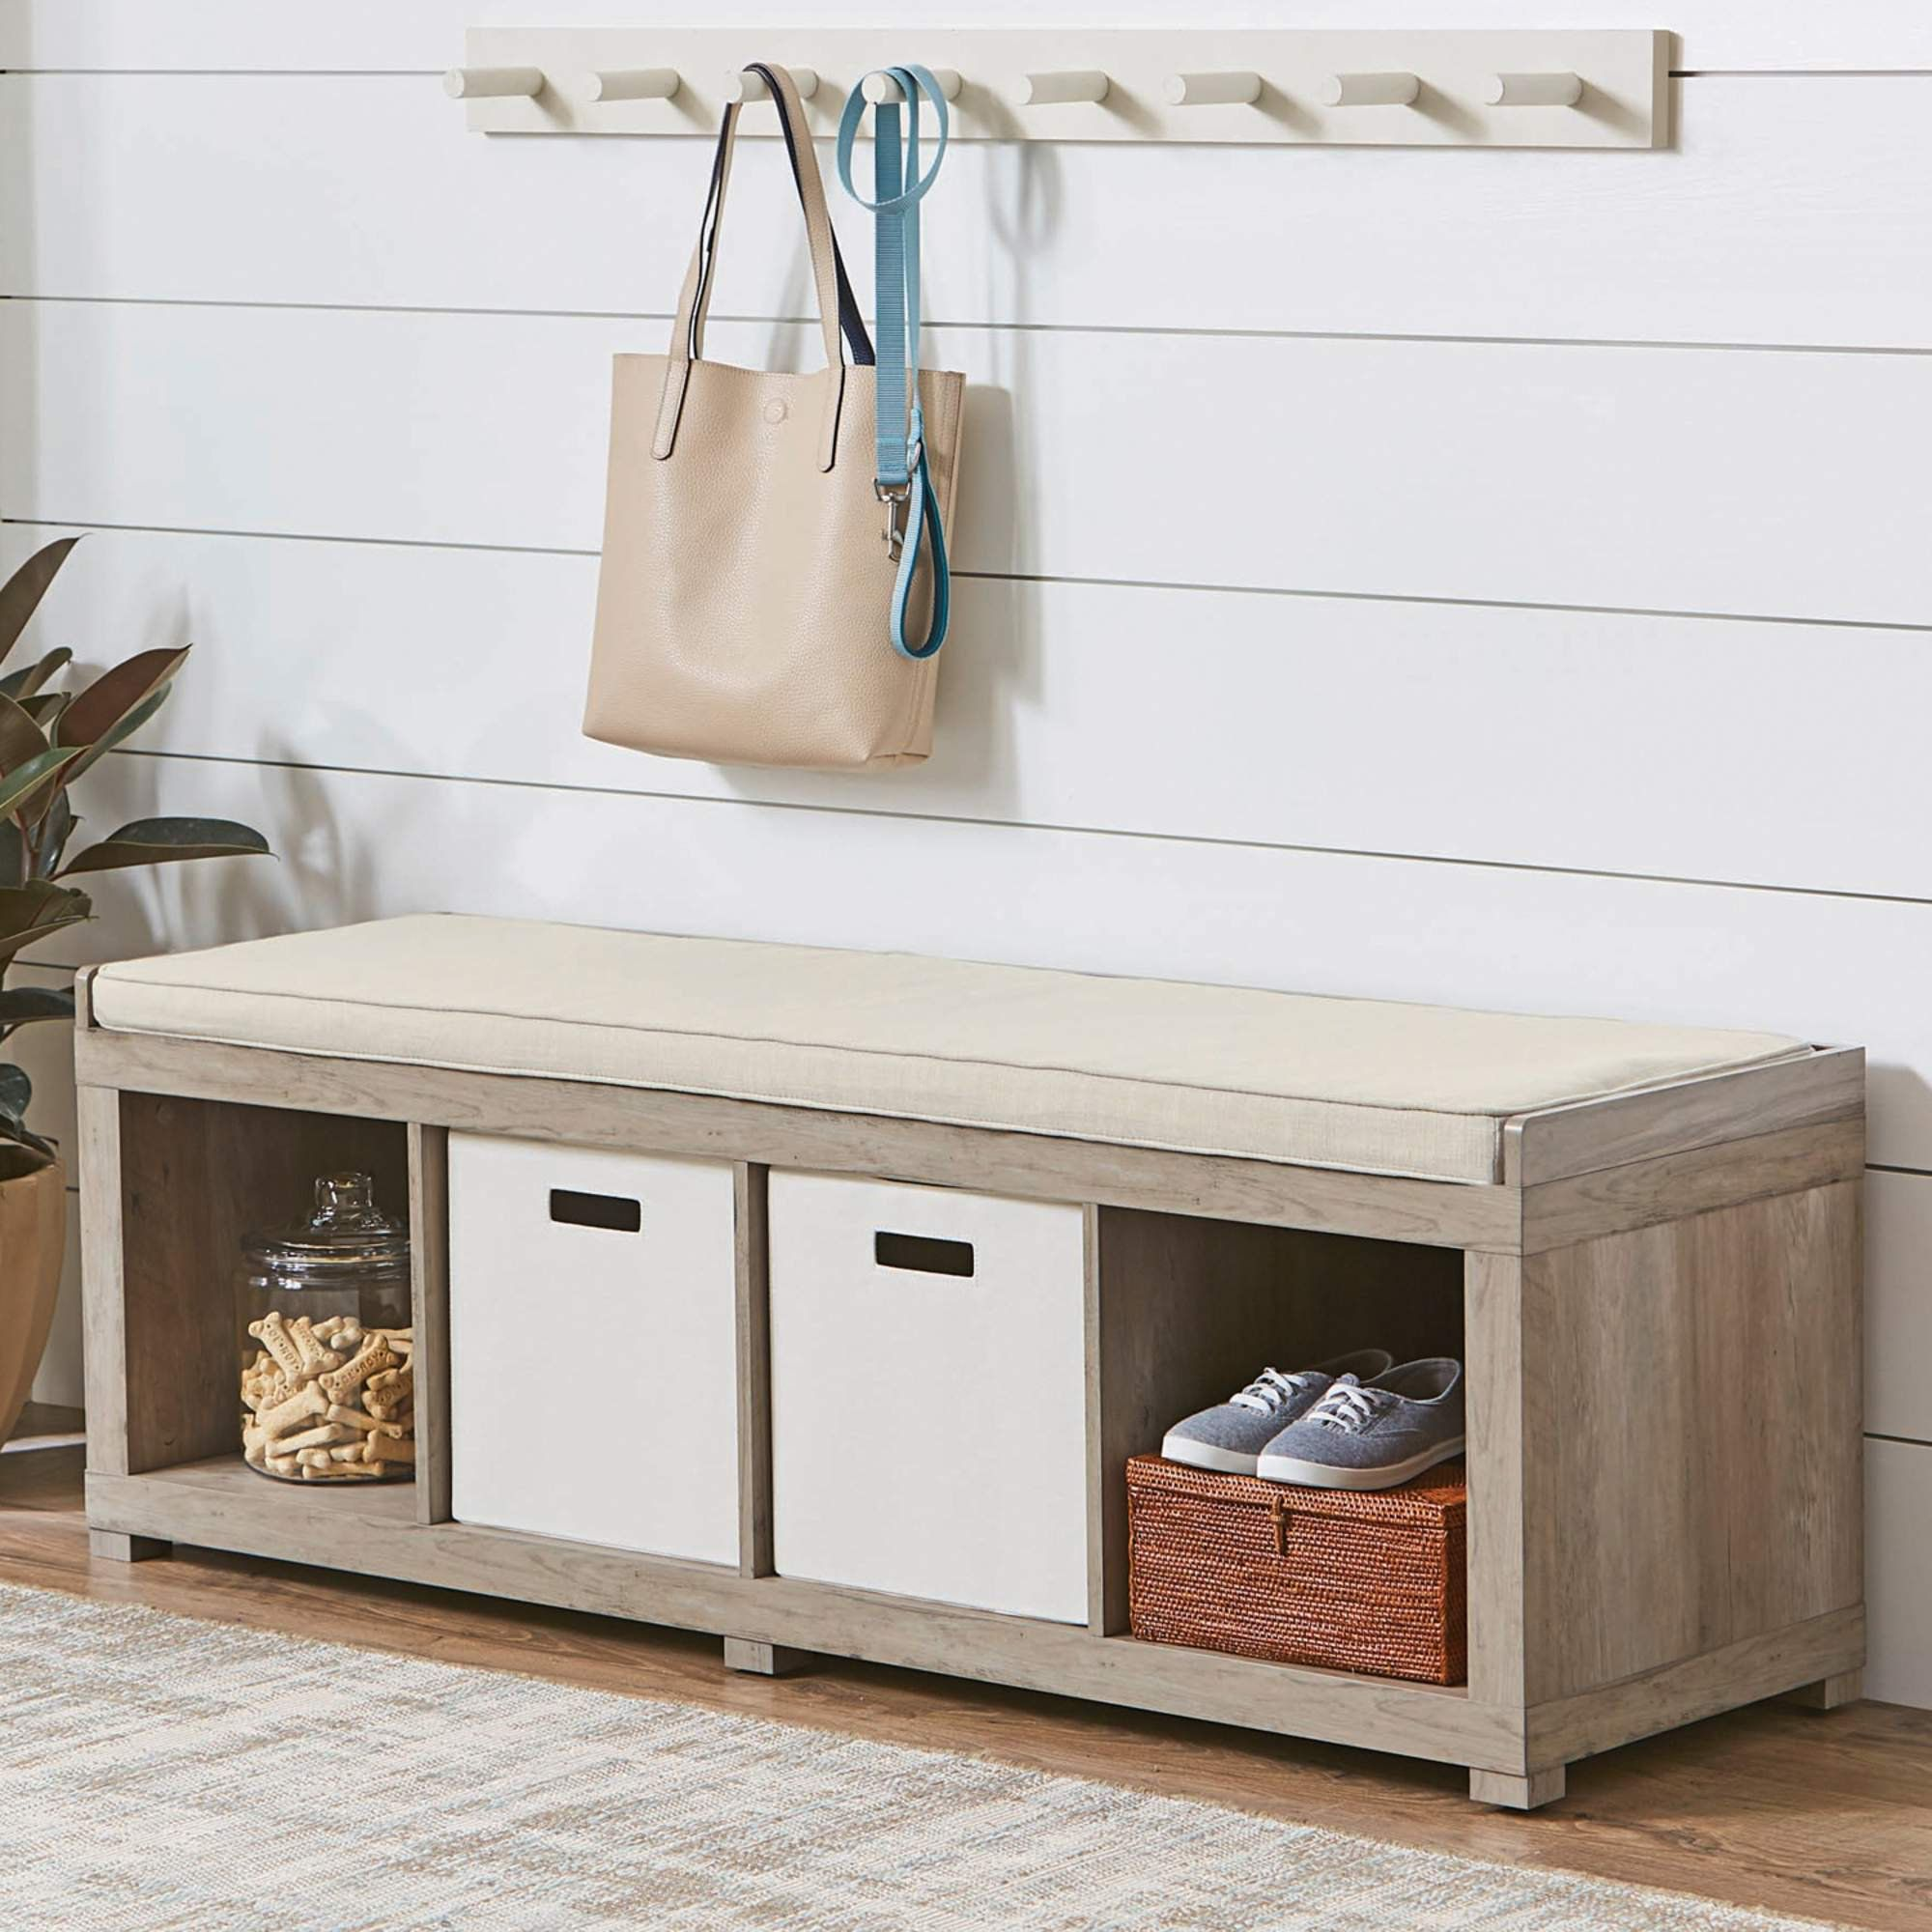 51d73c9632a1f462451c221c476ce231 - Better Homes And Gardens 3 Cube Organizer Bench Weathered